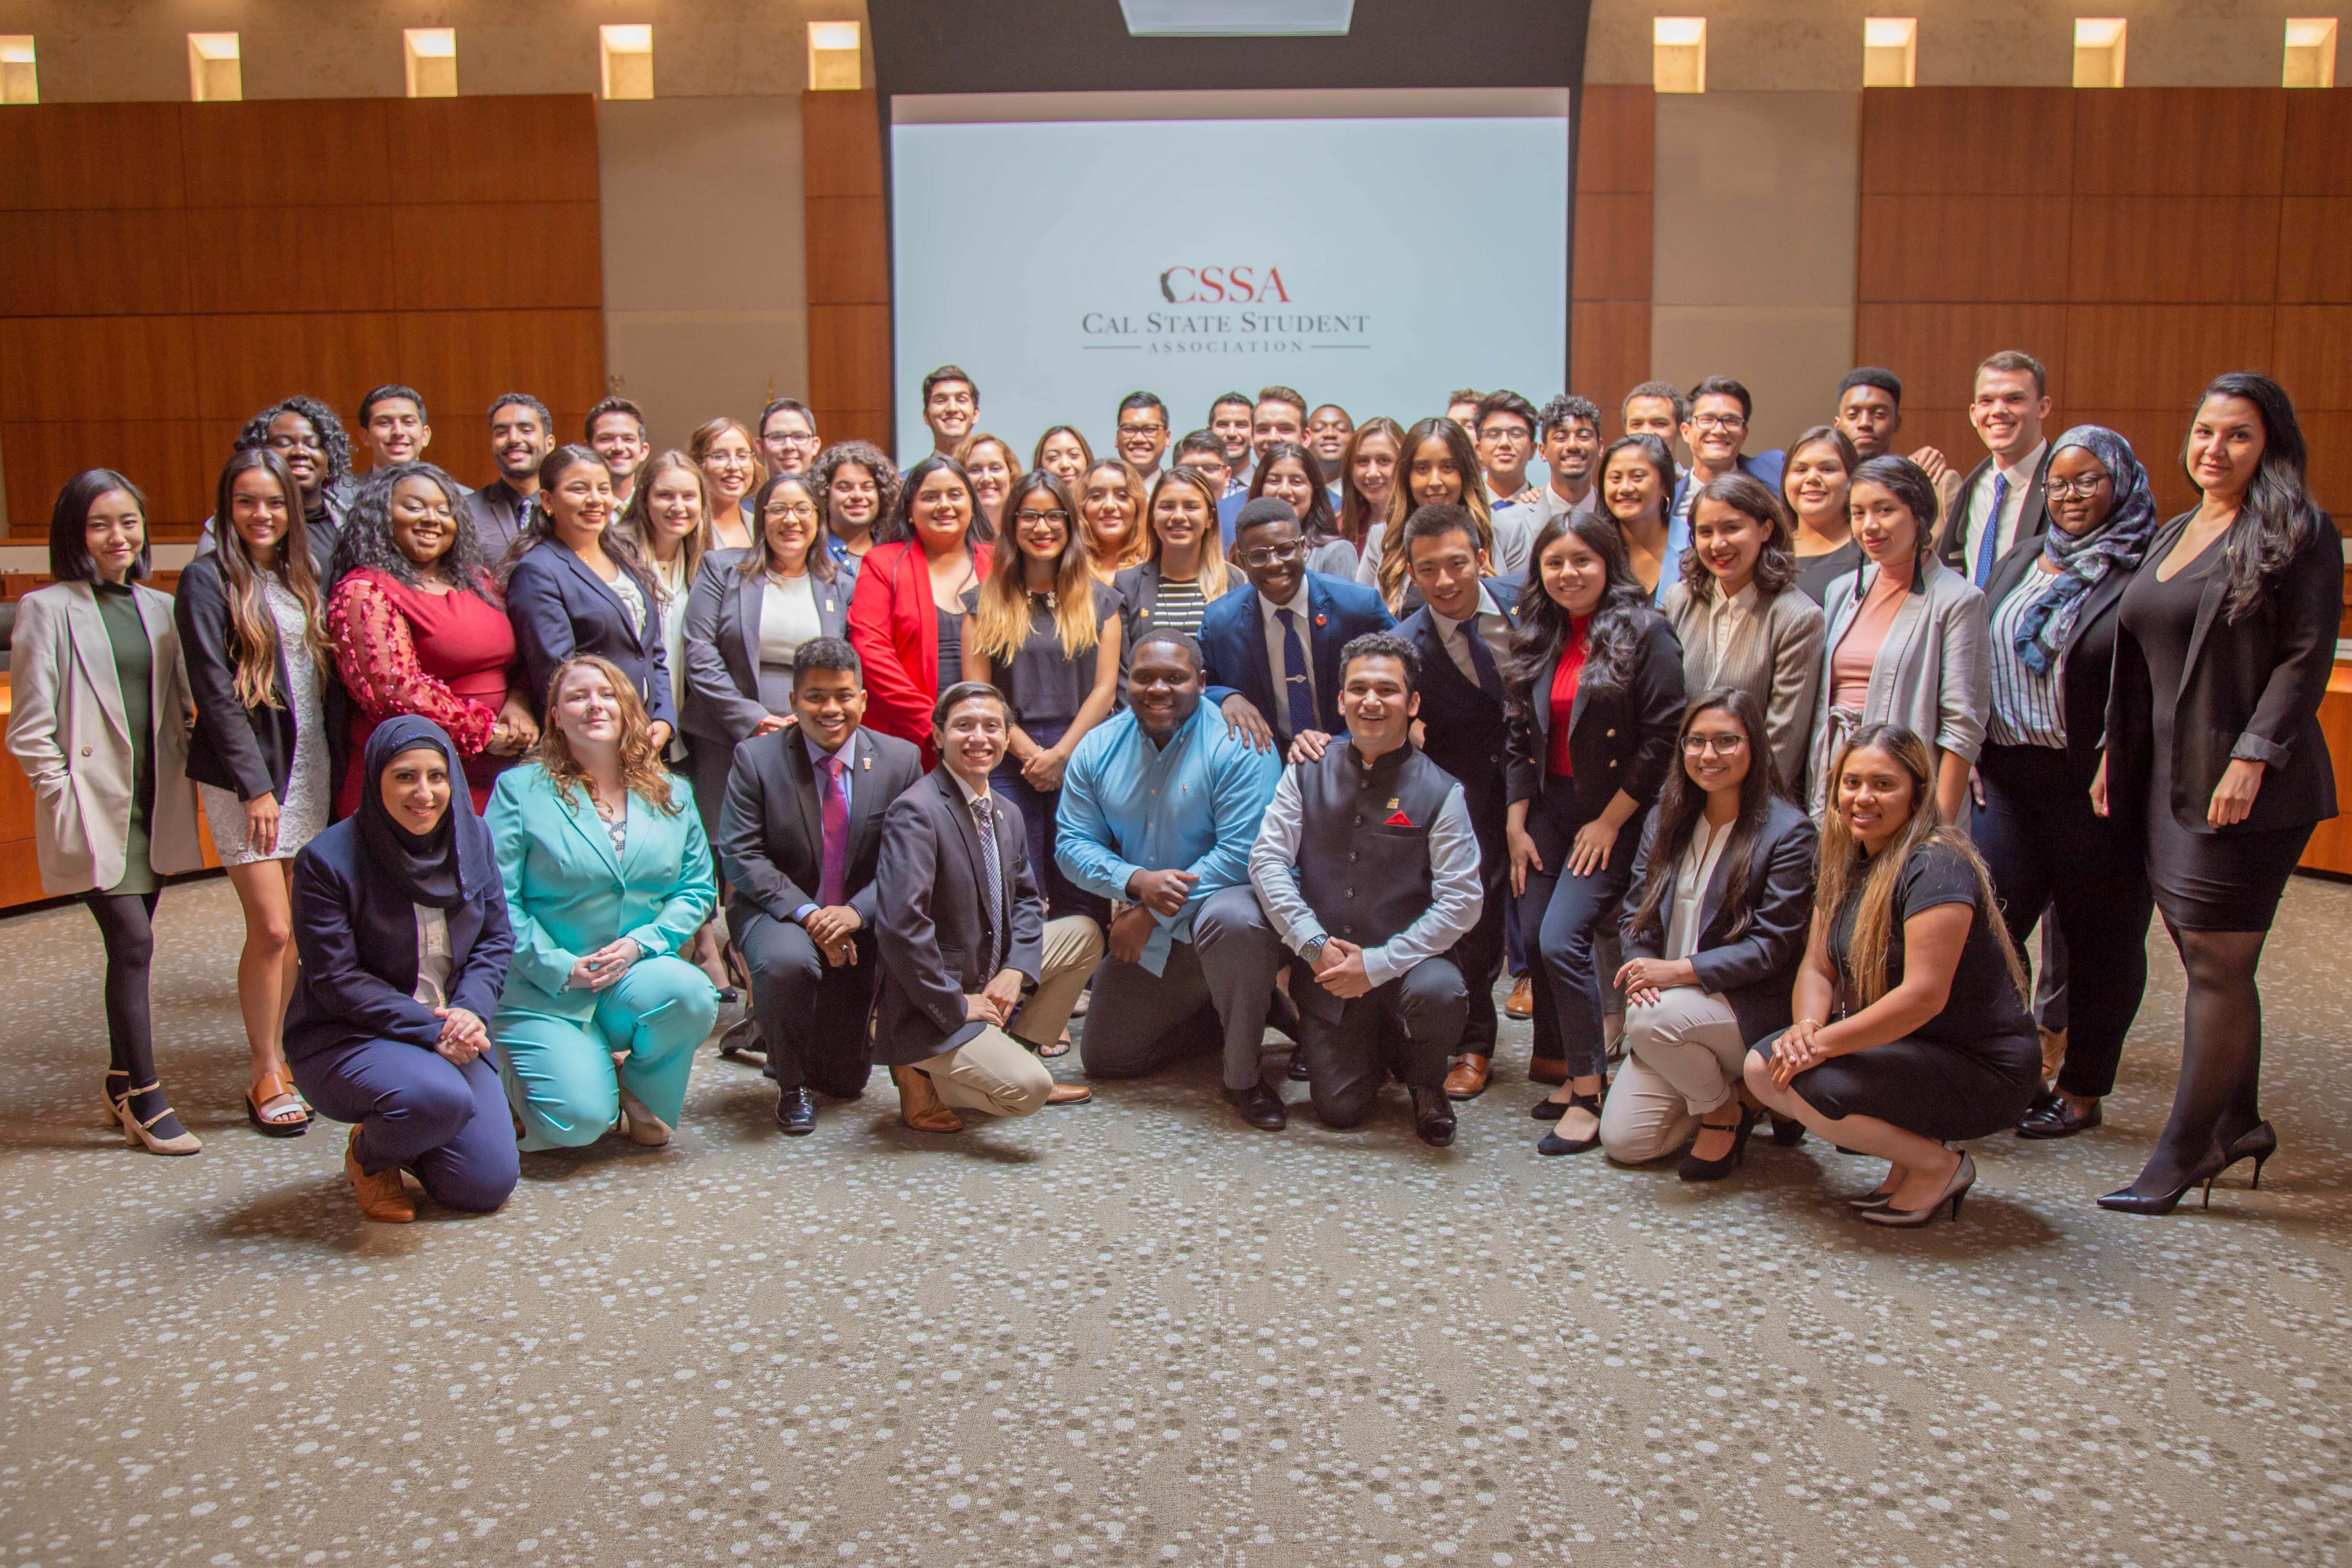 A large group of student representatives from all CSU campuses